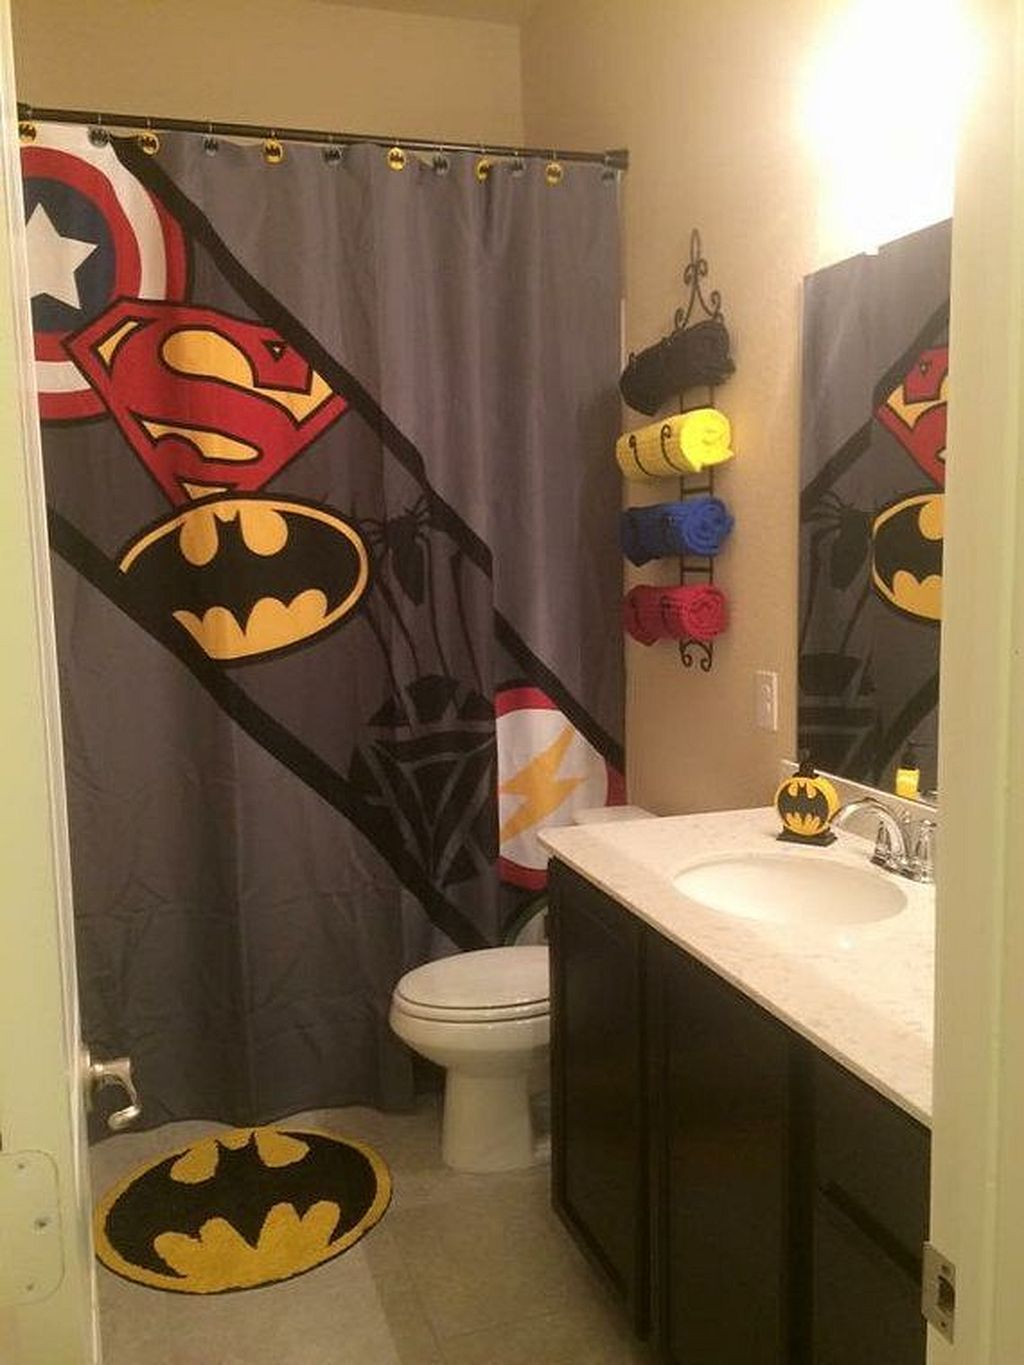 10 Batman Bathroom Ideas 2020 The Legendary Super Hero Boys